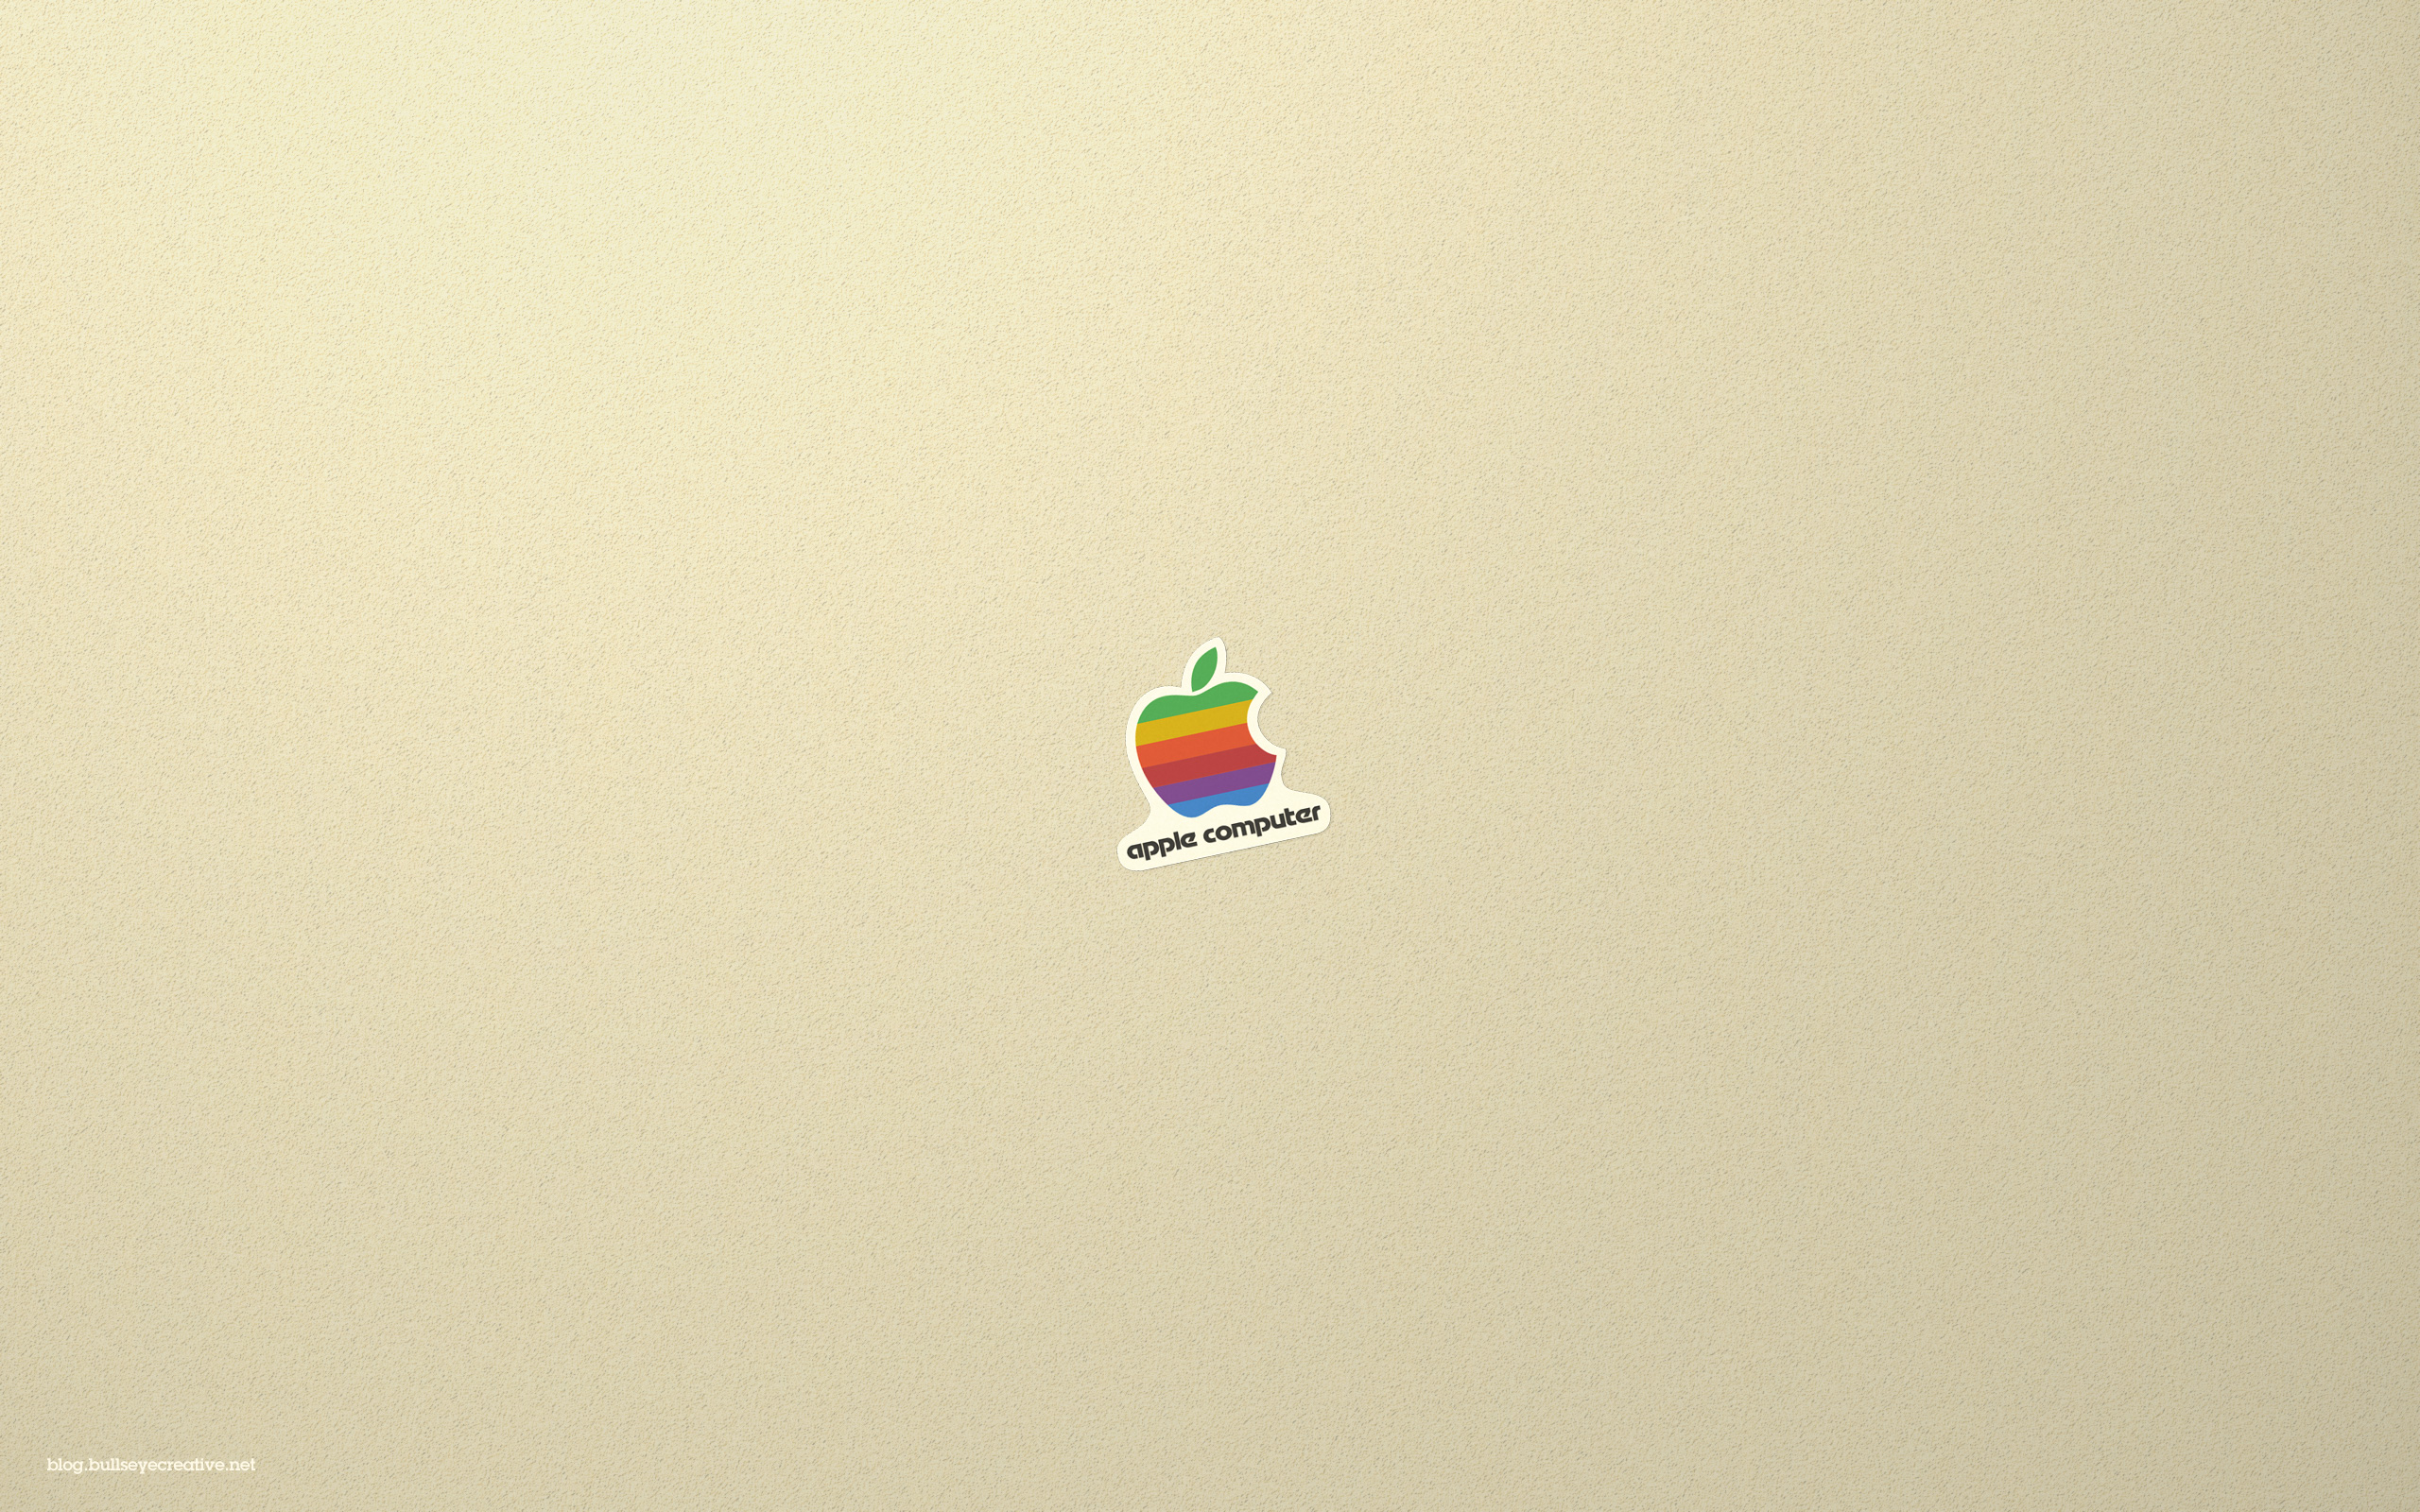 Mac Classic Finder wallpaper. Retro Apple Sticker ...